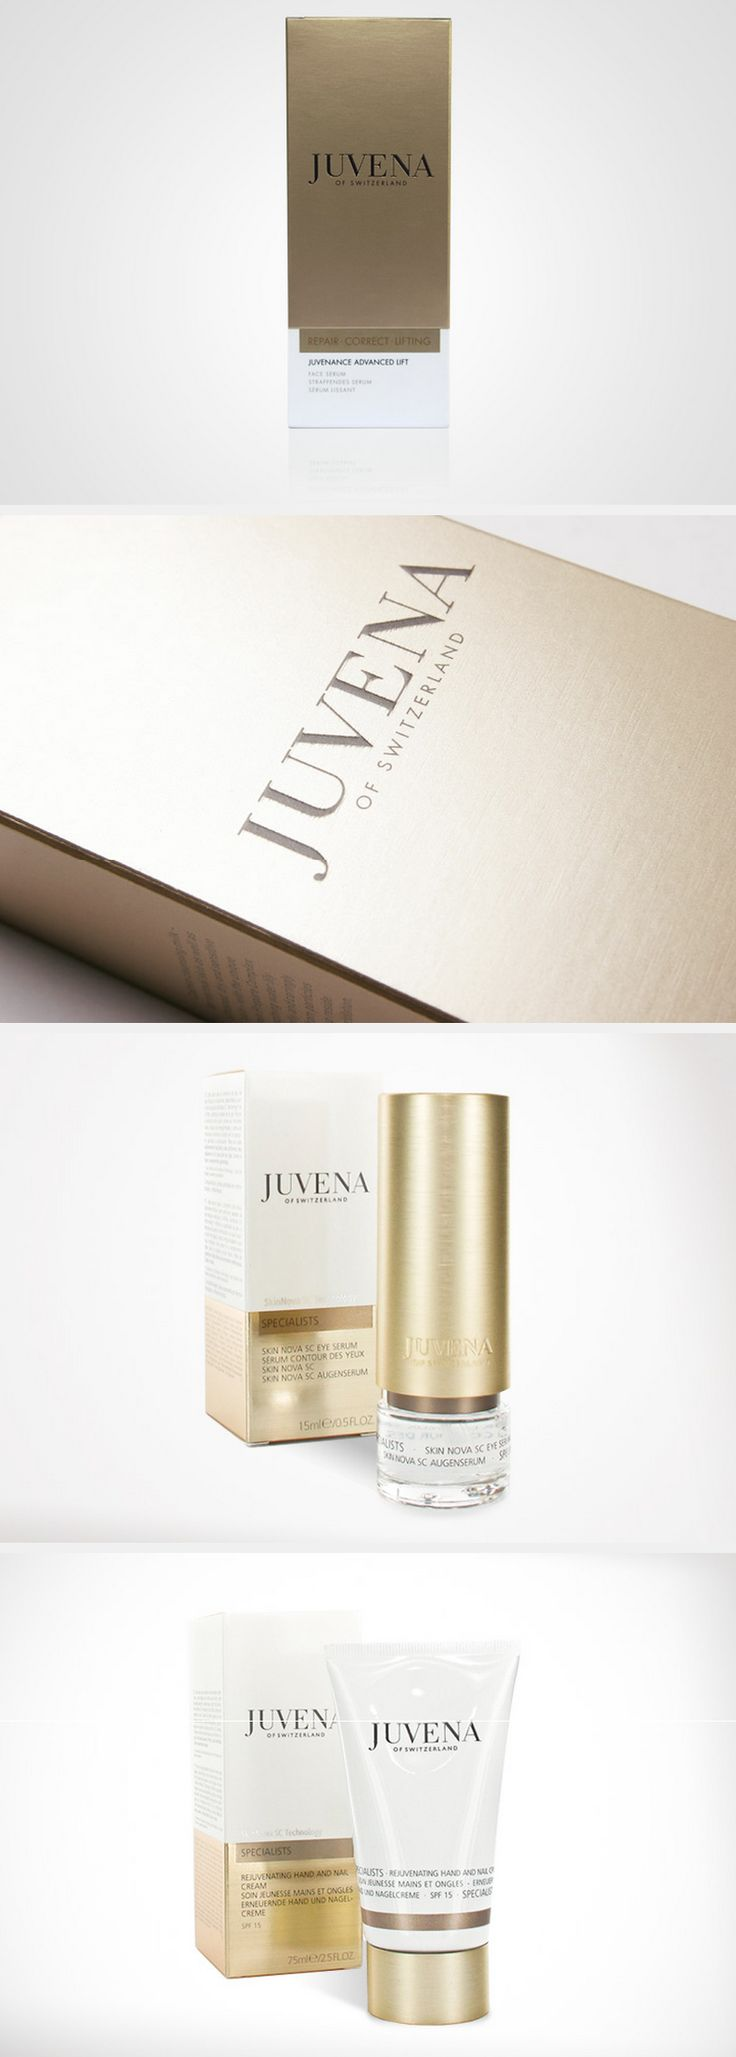 OLIVER MOORE - JUVENA PACKAGING